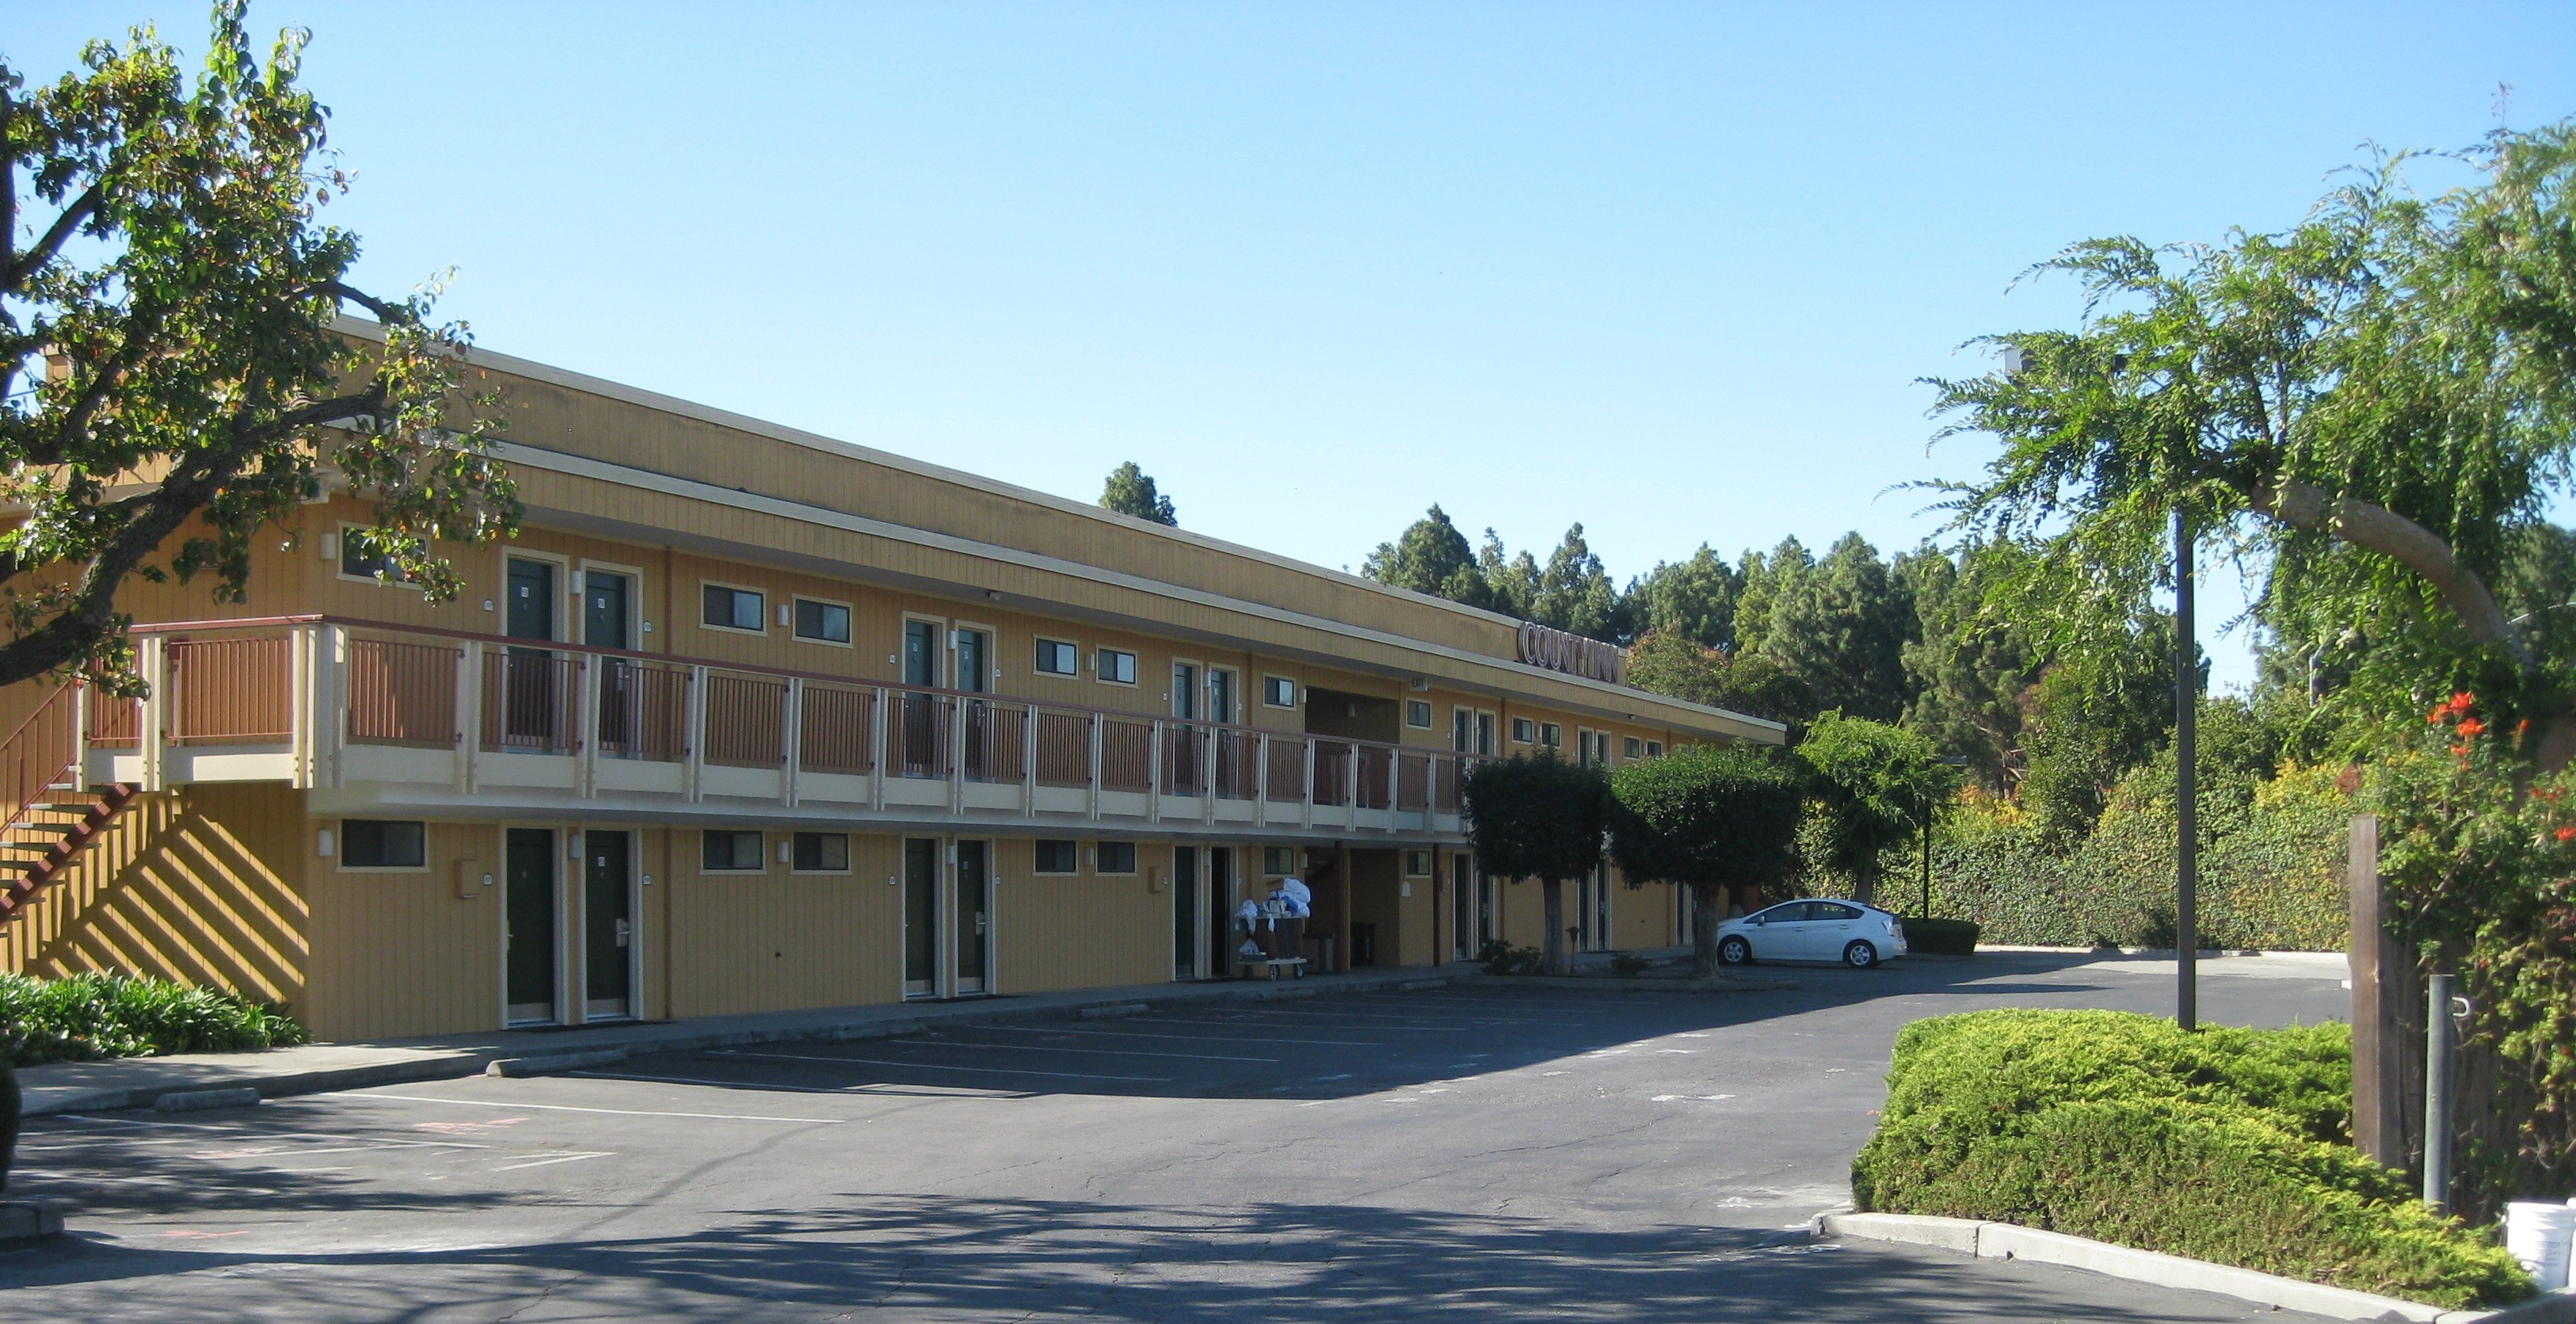 County Inn on Leong Drive